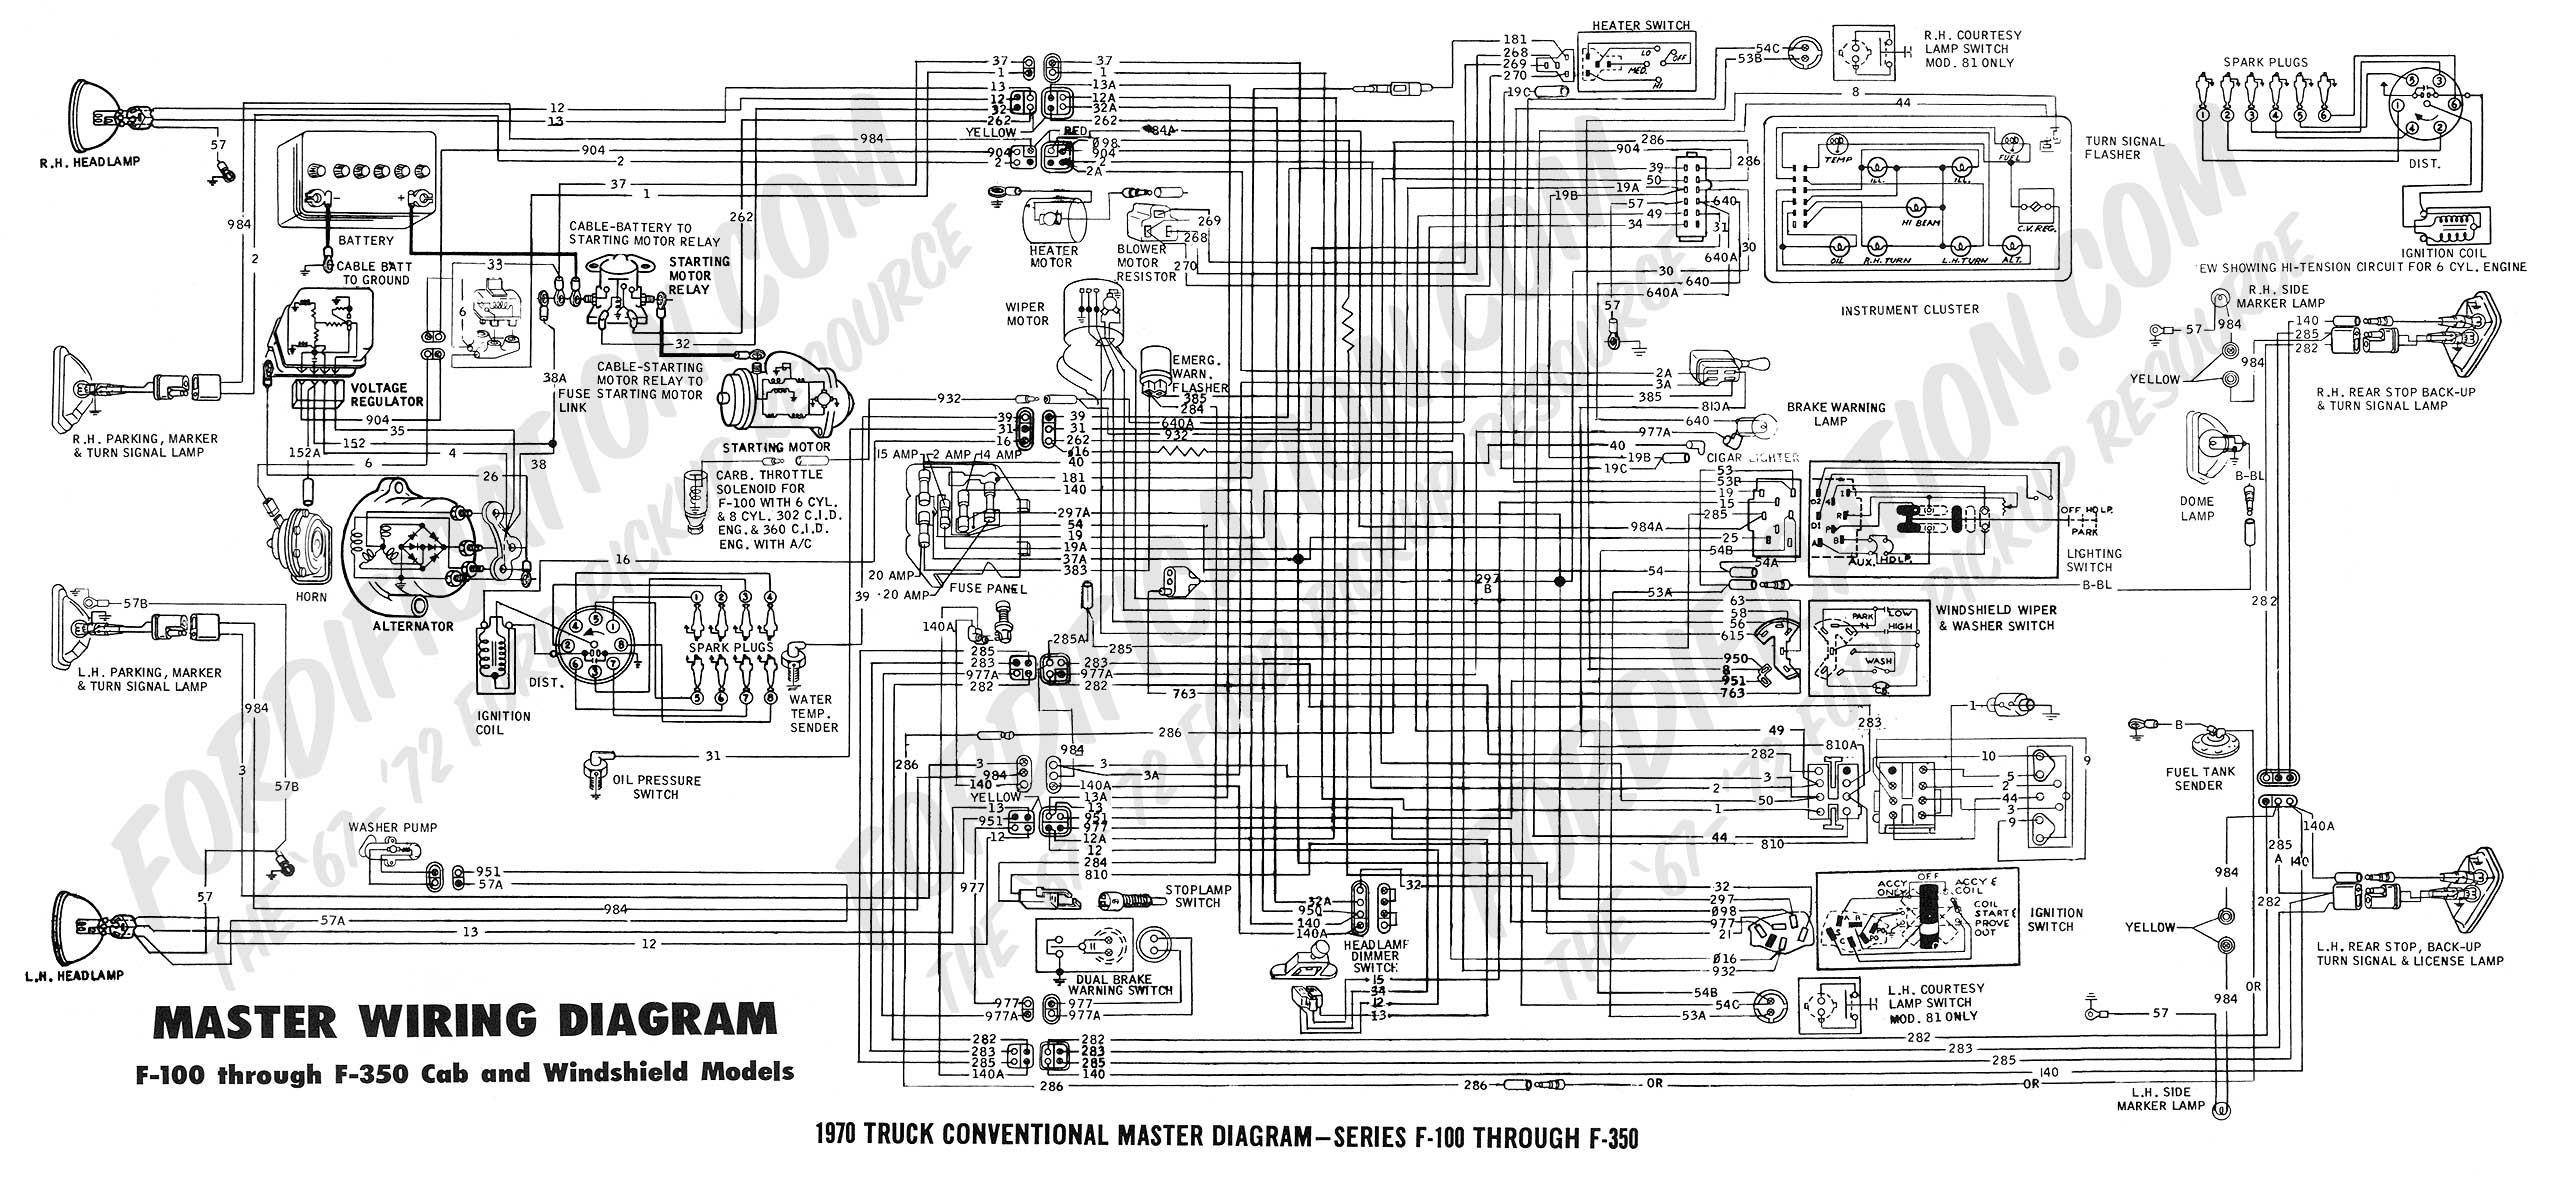 wiring diagram 70_master ford truck technical drawings and schematics section h wiring ford wiring schematics at n-0.co